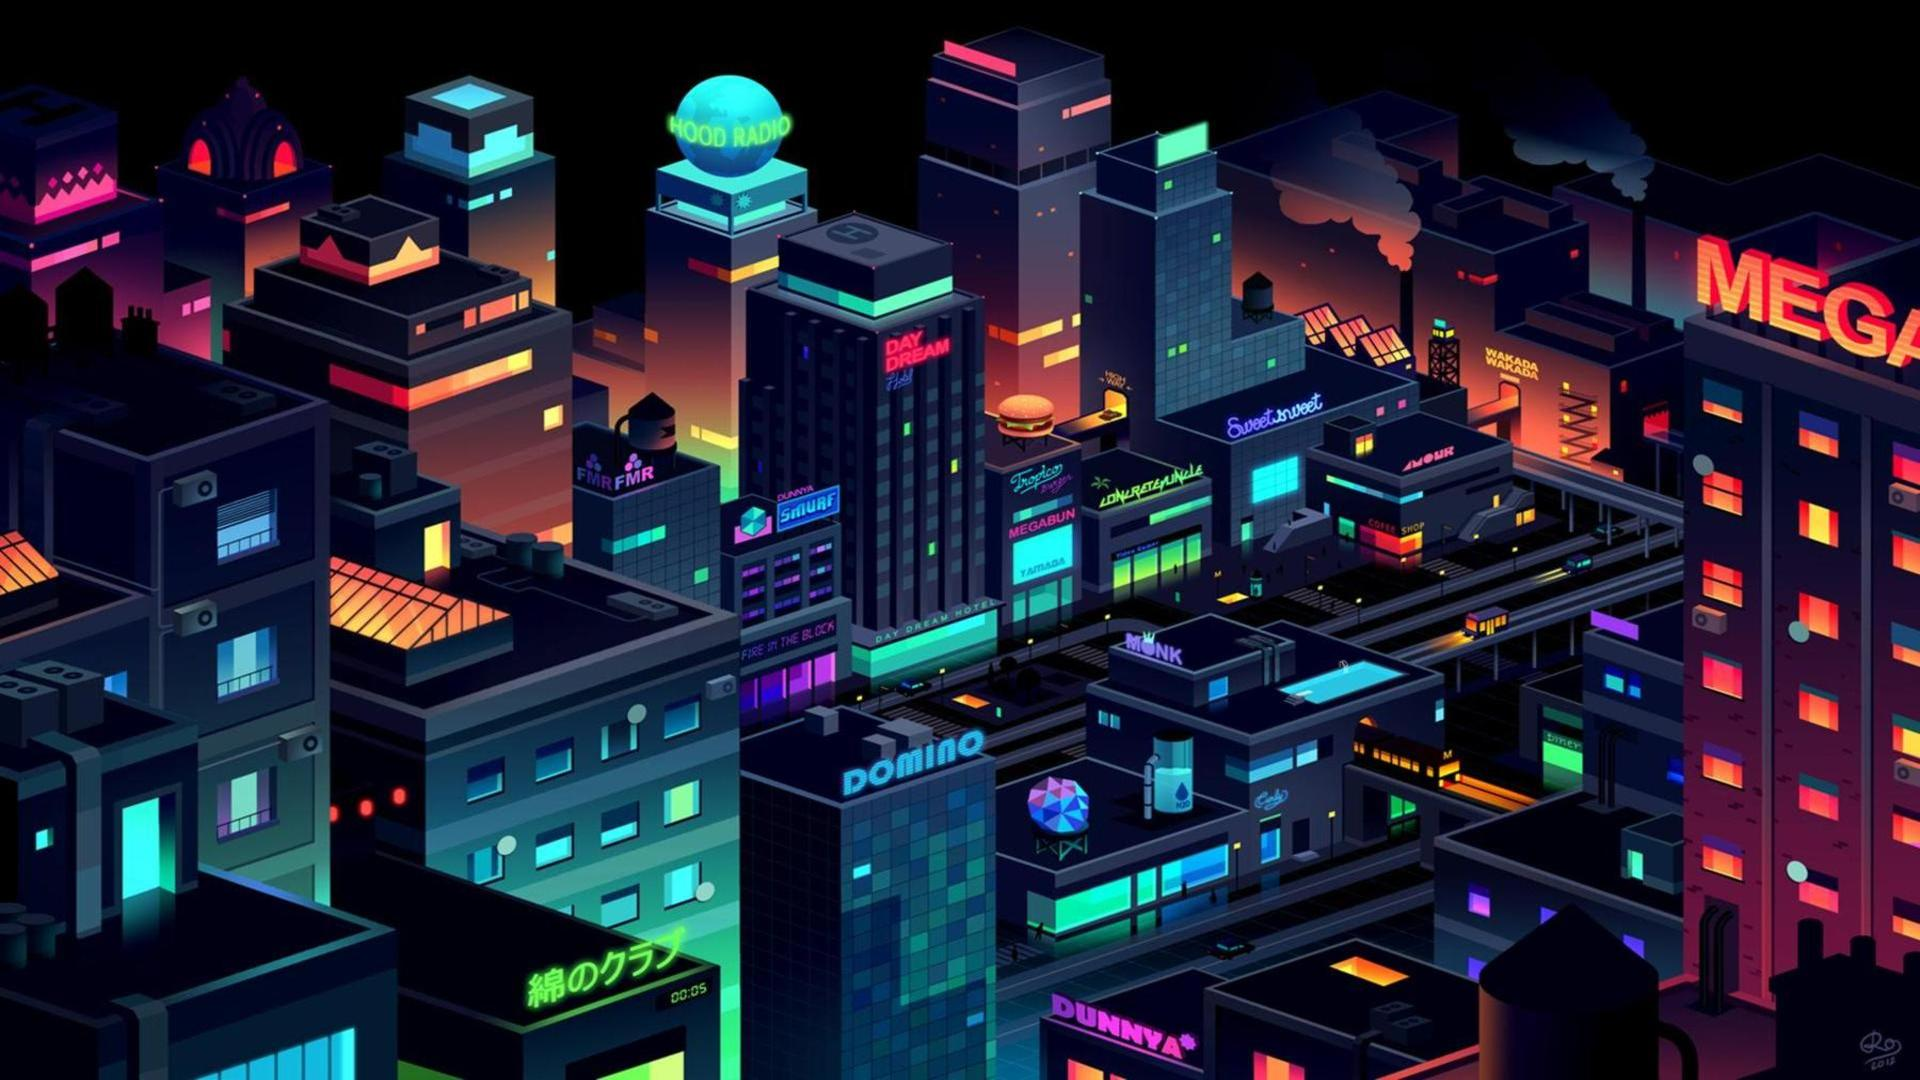 How To Make Live Wallpaper Work Iphone X Download Neon City Wallpaper Gallery